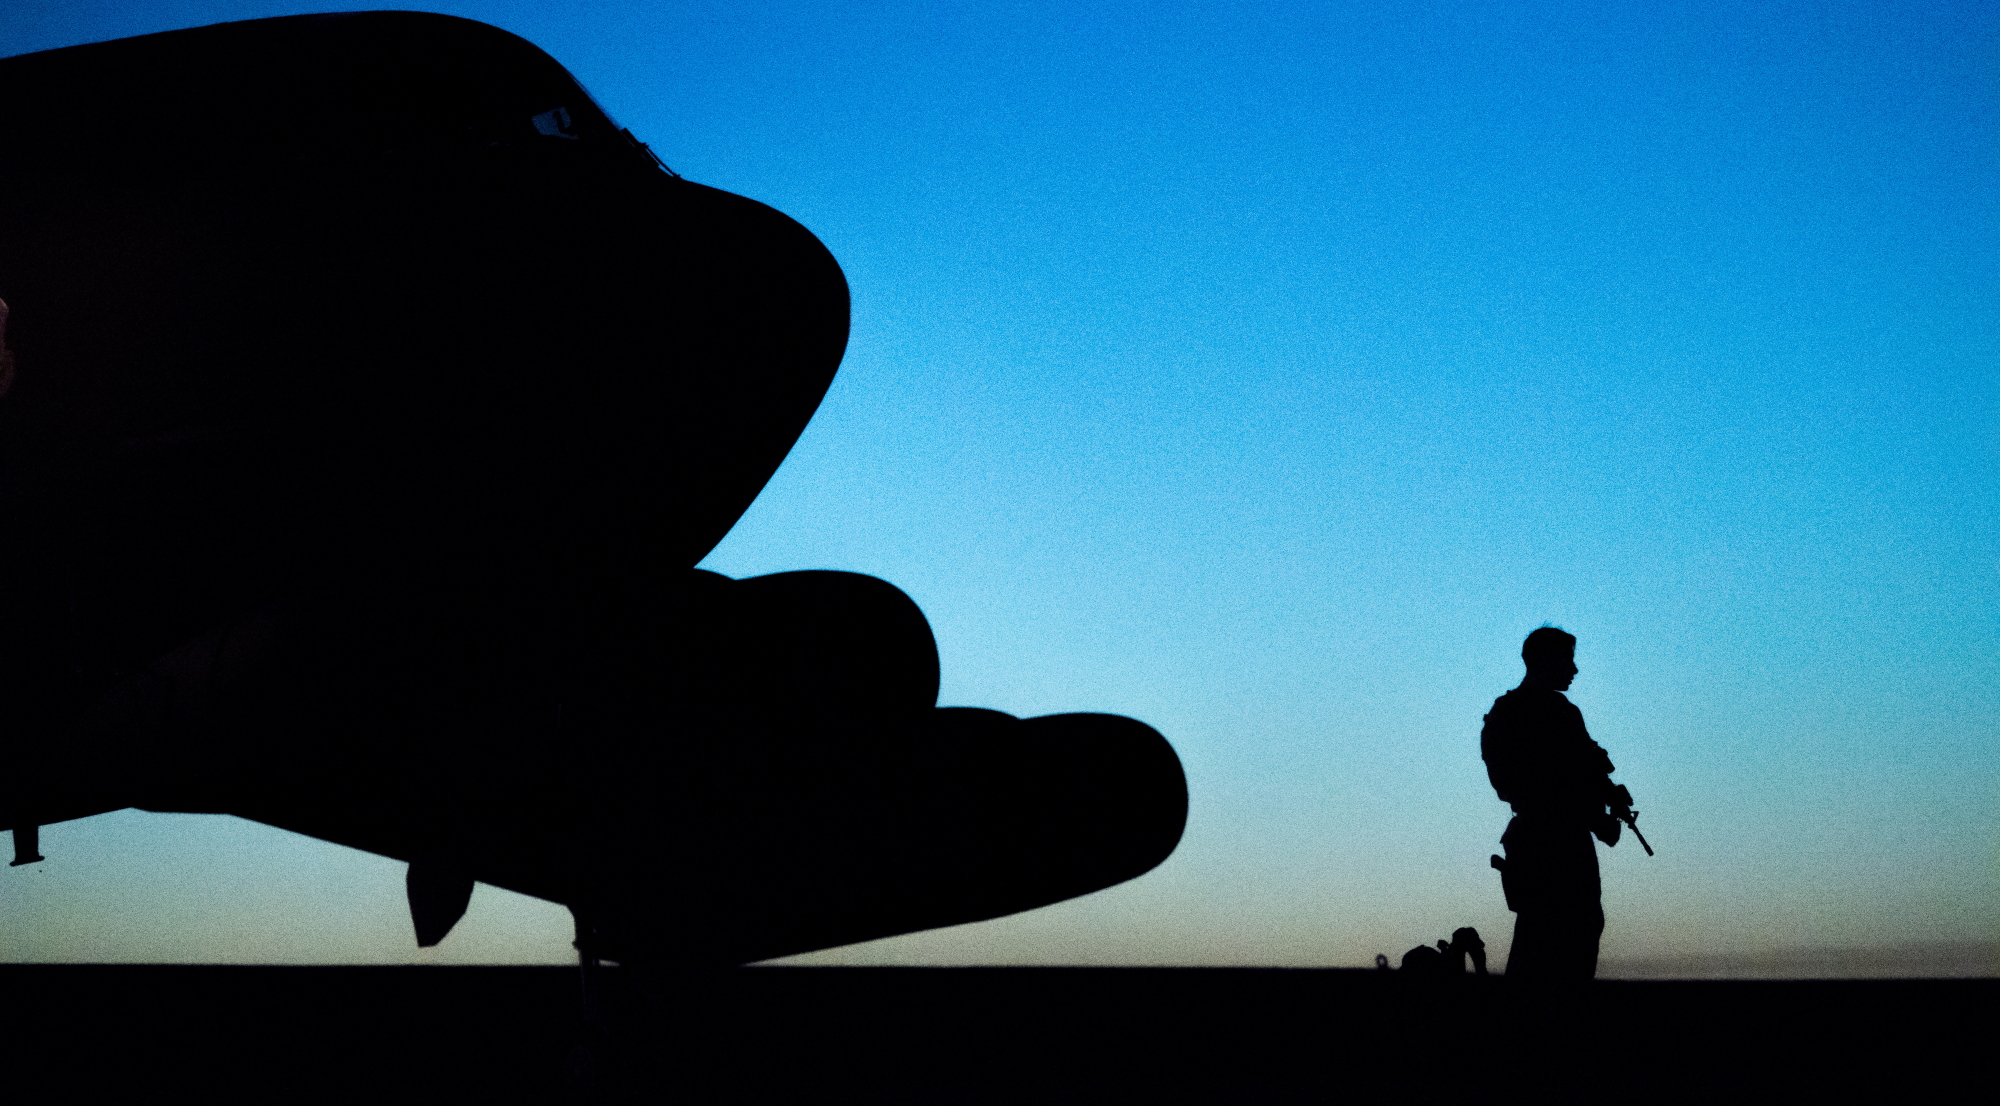 Airman Mario Diaz, 2nd Security Forces Squadron installation access controller, guards a B-52H Stratofortress during exercise Global Thunder 20 at Barksdale Air Force Base, La., Oct. 22, 2019. (Senior Airman Tessa B. Corrick/Air Force)